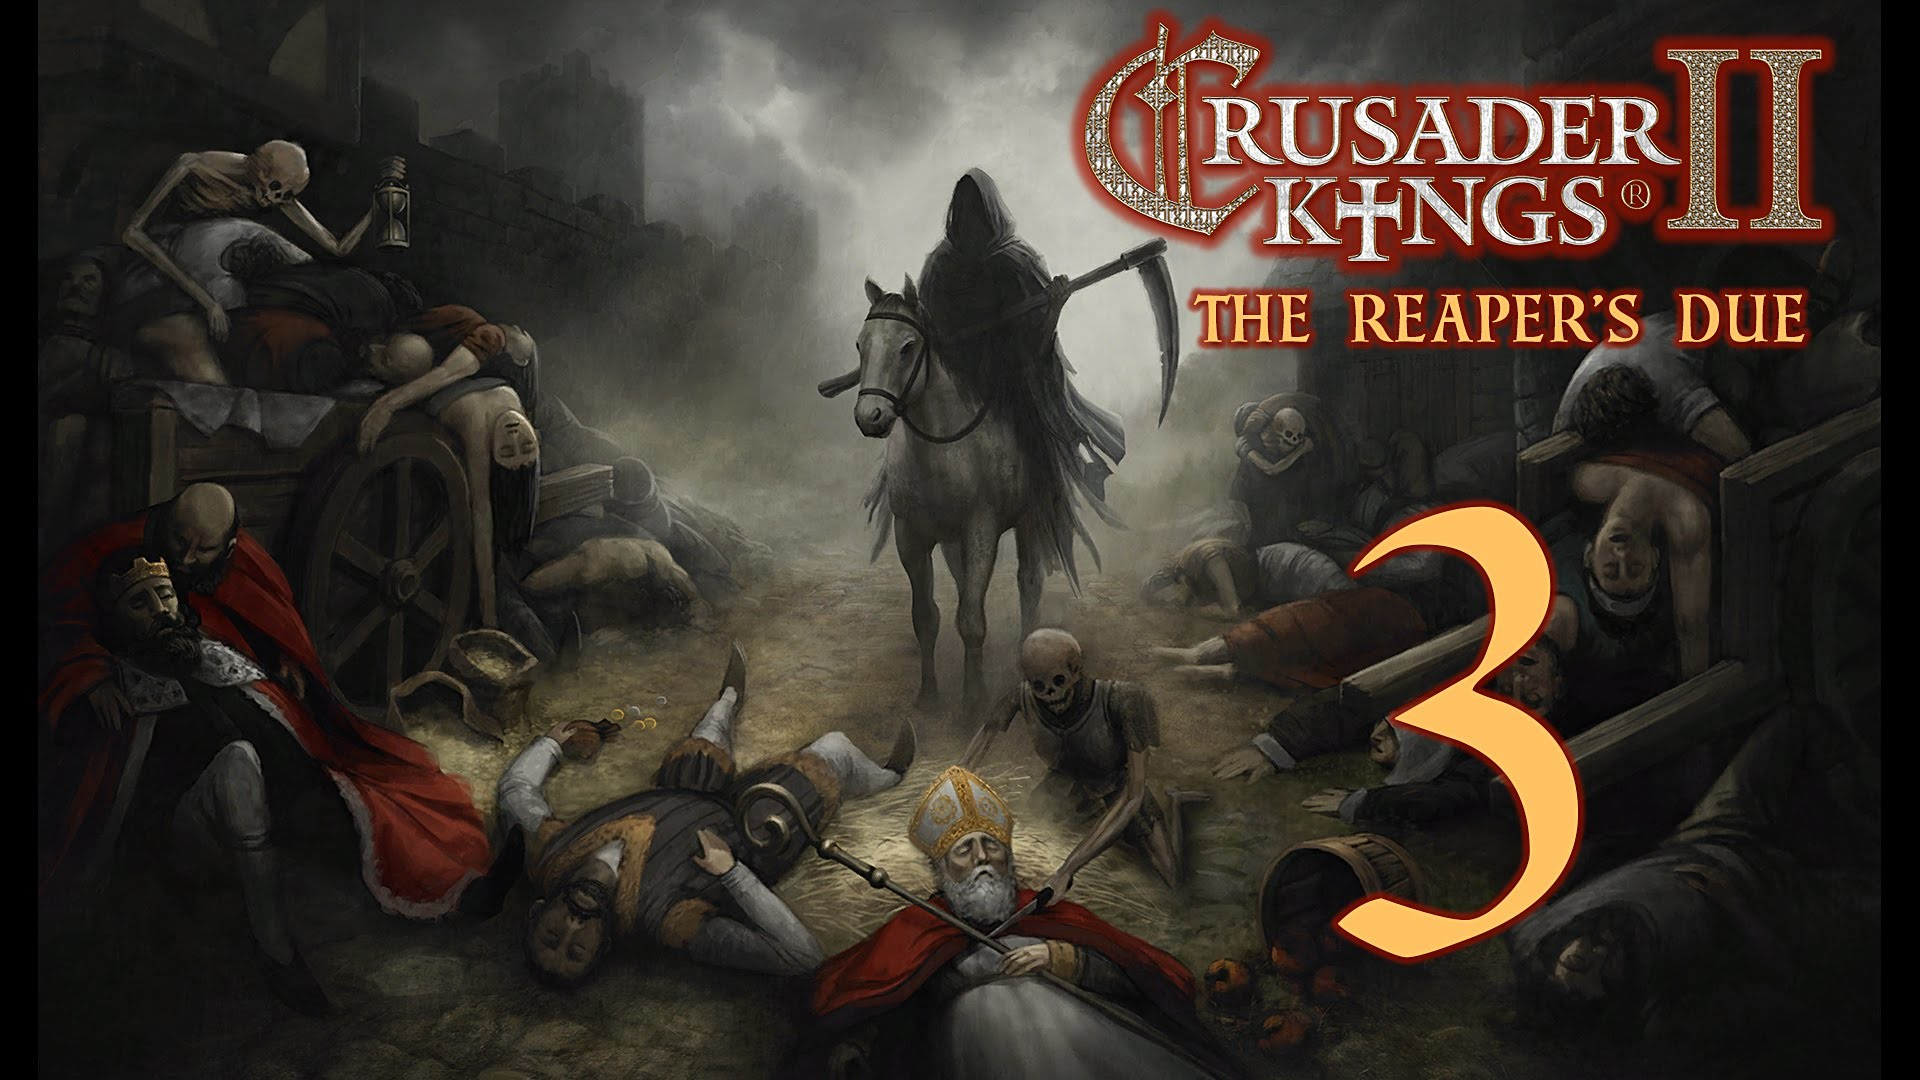 Crusader Kings 2: The Reaper's Due – BLACK DEATH Upon England Part 3